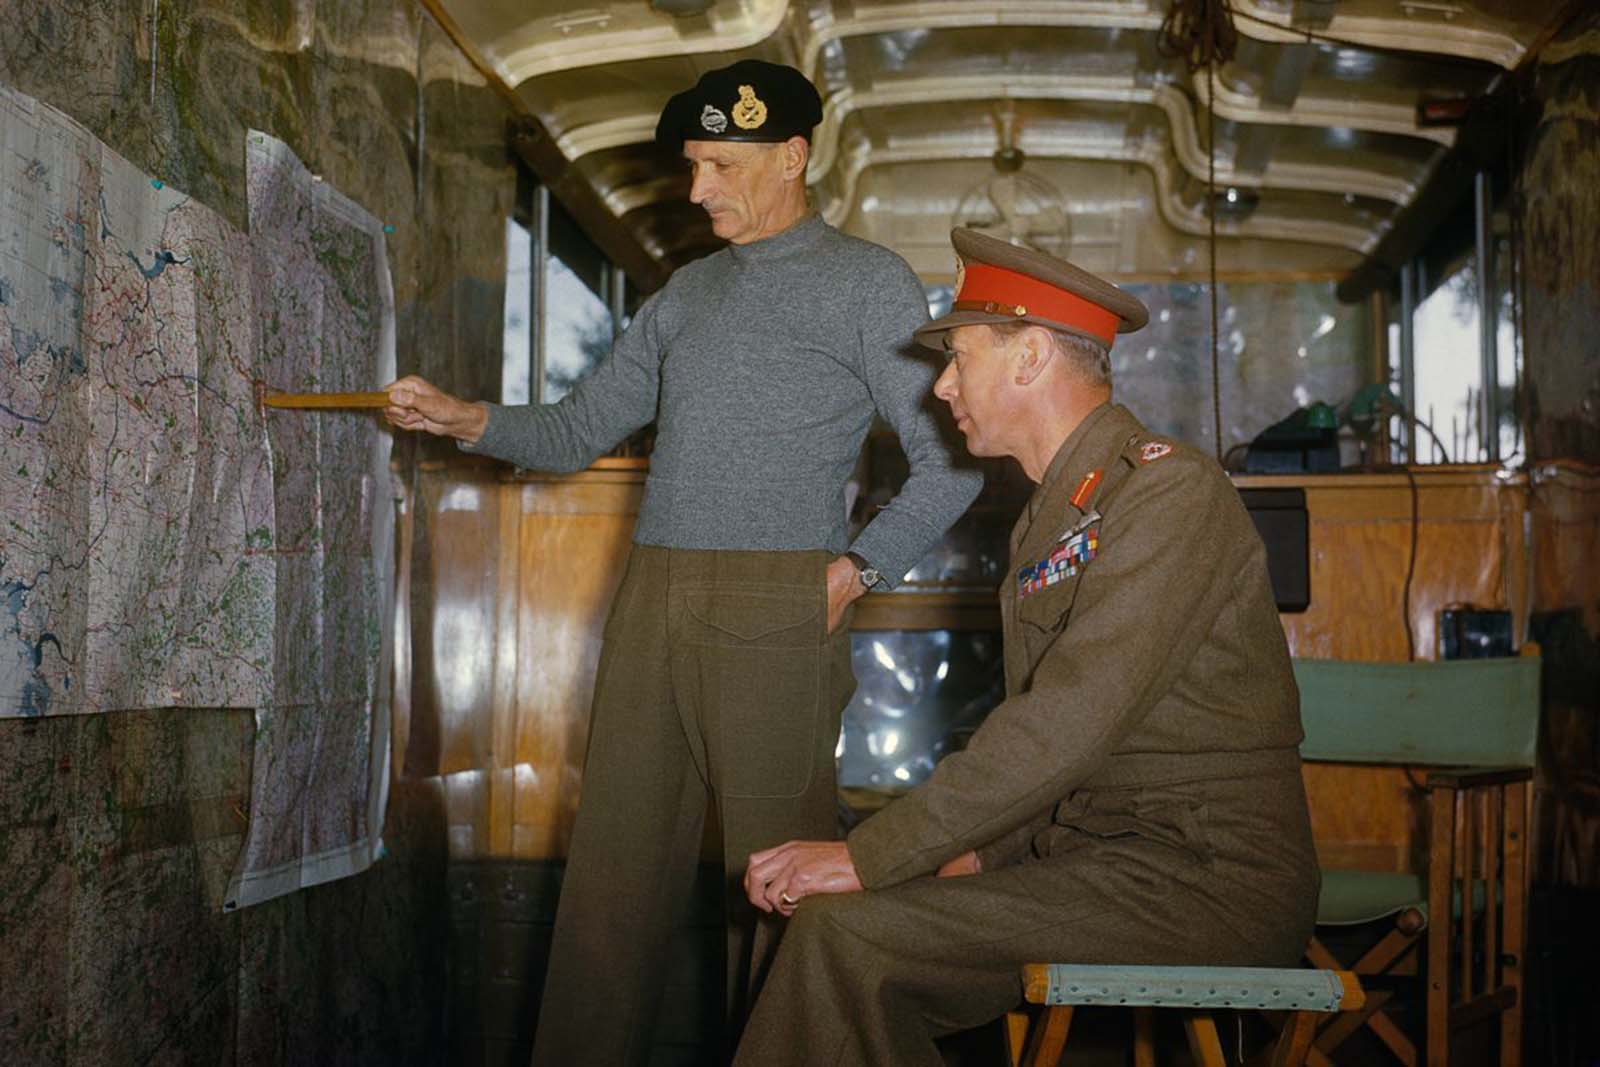 Field Marshal Sir Bernard Montgomery explains Allied strategy to King George VI in his command caravan in Holland. 1944.